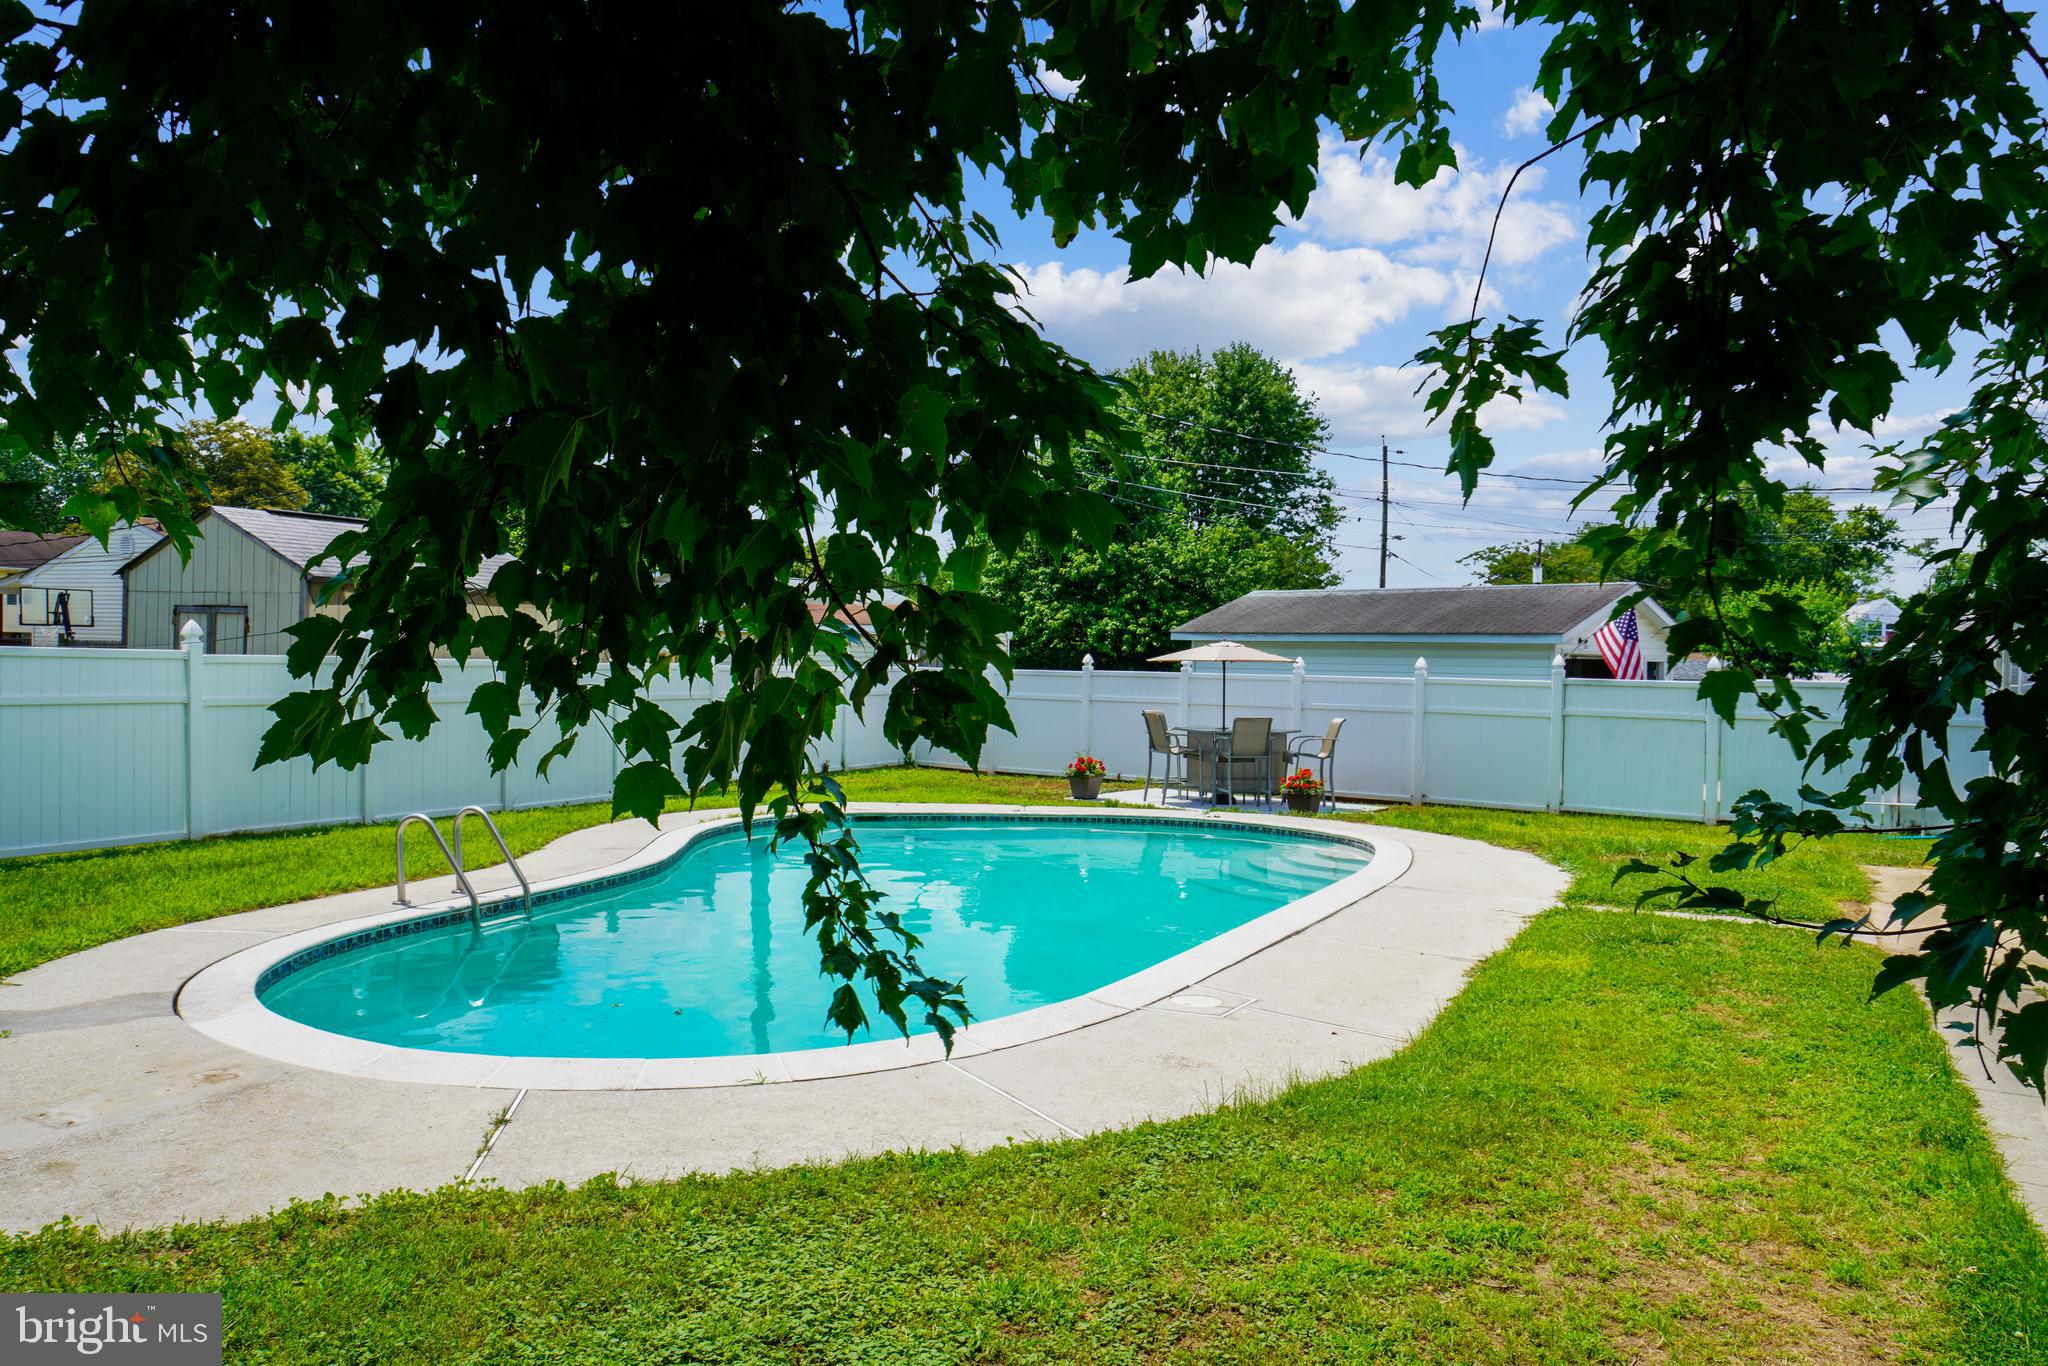 Great house for these hot hot summer days, cool off in your...IN-GROUND 30,000 GALLON POOL with privacy fence & lighting for dramatic and fun evening swimming~Great way to beat the heat and cope with Covid-19 quarantine~POOL  will extend swim season well beyond Labor Day~Added plus... spacious windowed/screened OUTDOOR PARTY ROOM ADDITION - perfect for crab feasts, outdoor dining under cover,  fun for card games and puzzle making or dance/tik-tok parties while sheltered from inclement weather~PLUS...NEW LAMINATE FLOORING  in bedrooms and lower level~FRESH PAINT THROUGHOUT in June 2020  (ceilings, walls, trim, kitchen cabinets,, and closets!)~NEW VANITIES , FAUCETS and FLOORING in bathrooms~NEW COOKTOP and COUNTERTOPS and BACKSPLASH in kitchen~NEW ROOF August 2019 and NEW HVAC SYSTEM November 2019 (both with transferable warranties)~NEW VINYL THERMAL  WINDOWS at FRONT and  SIDES in 2018~2 FULL BATHROOMS with NEW FLOORING, VANITIES and FAUCETS~ Lower level with separate closed-door office space, plus guest bedroom and large family room and laundry storage room (with ALMOST NEW WASHER and DRYER)~OFF-STREET DRIVEWAY PARKING as well as street parking~SIDEWALKS and STREET LIGHTS for walkers, joggers, bike riders and stroller pushers~Convenient location for end of quarantine/return to work commuting~2.65 MILES TO LIGHT RAIL and only 9.6 MILES TO BWI AIRPORT and AMTRAK STATION~1 MILE to Route 100 and Home Depot and Double T Diner~Easy commute to Fort Meade, Arundel Mills Mall~Historic Annapolis and Washington, DC less than an hour away.  Here's something to think about...despite a quarantine, you can still go away for a great summer vacation...right in your own backyard.